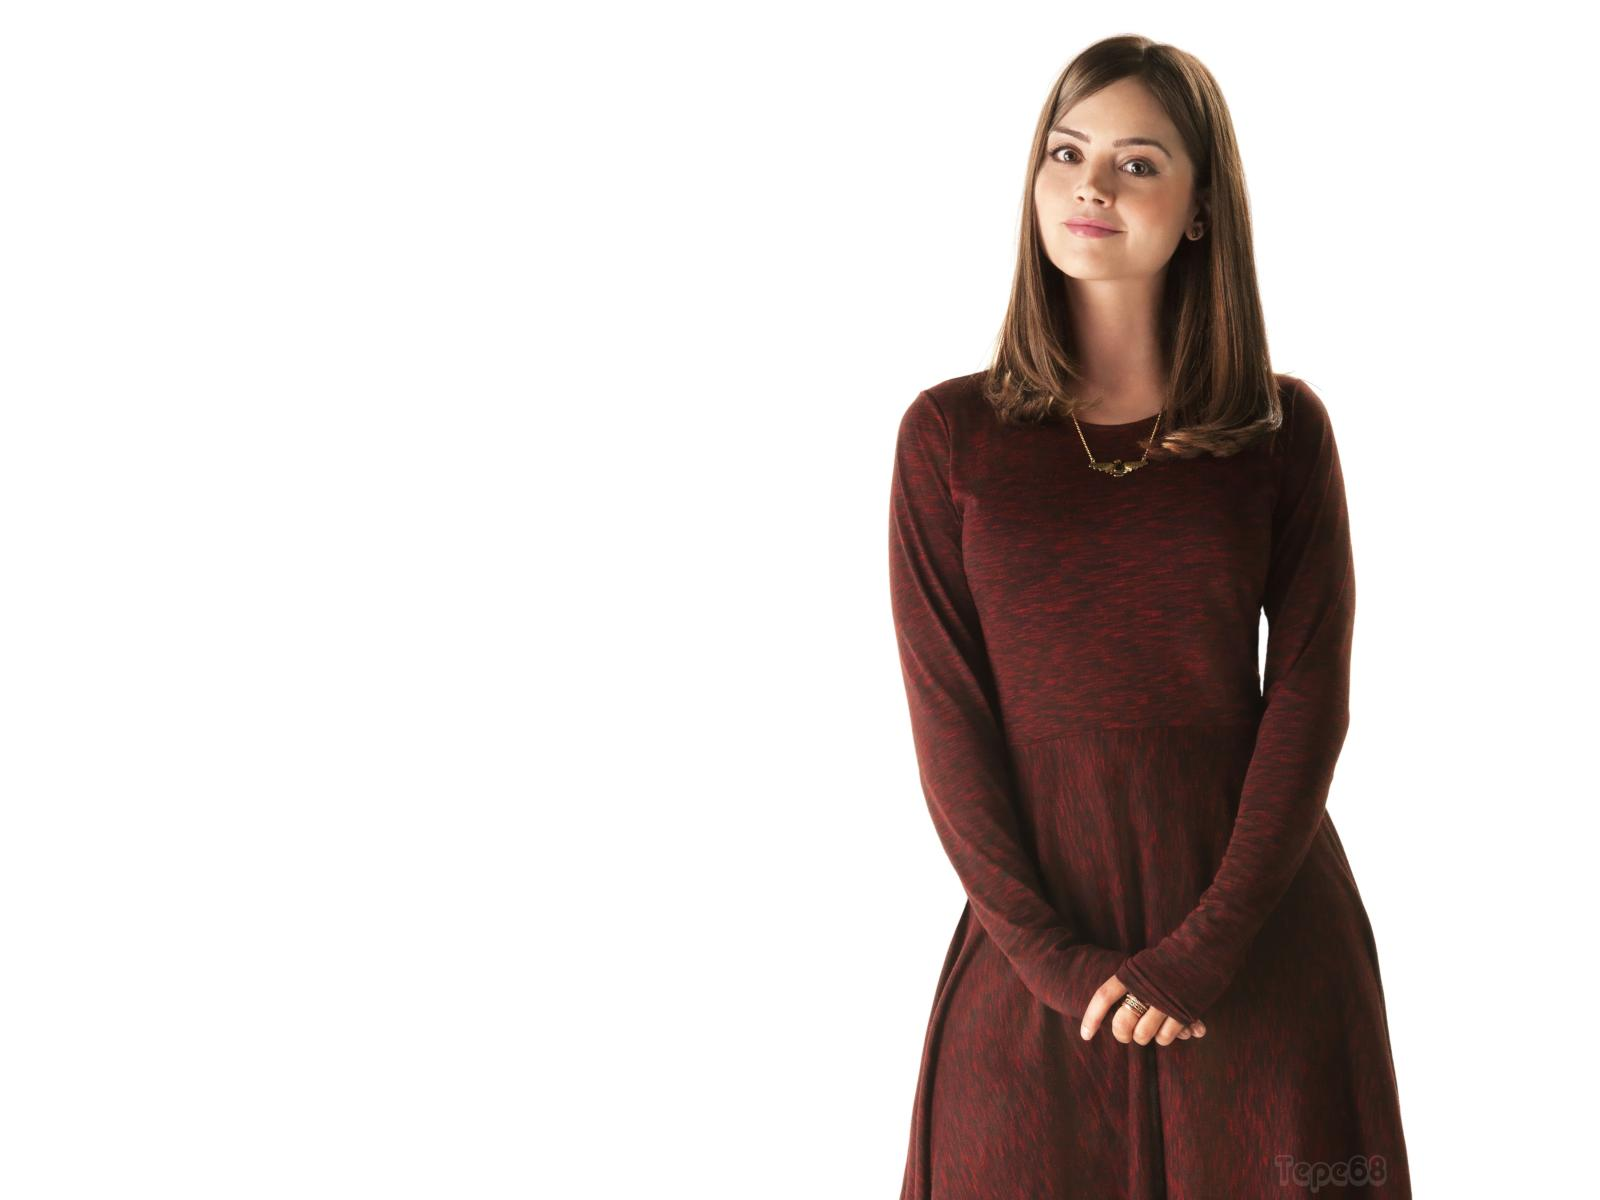 1600x1200 - Jenna-Louise Coleman Wallpapers 15